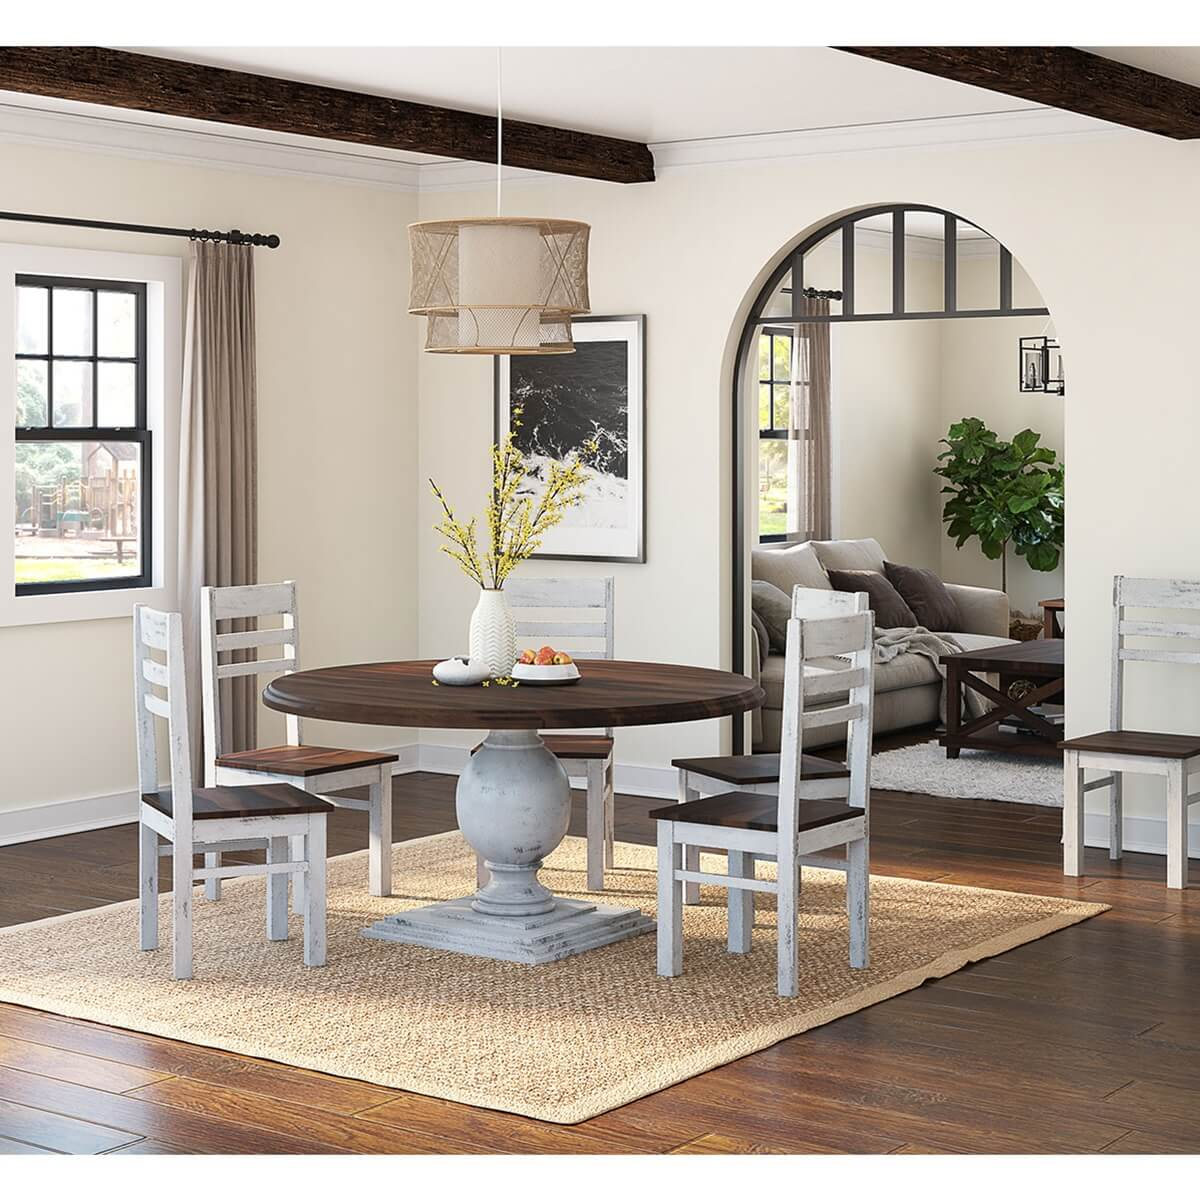 Illinois modern two tone large round dining table with 8 for Modern large dining table